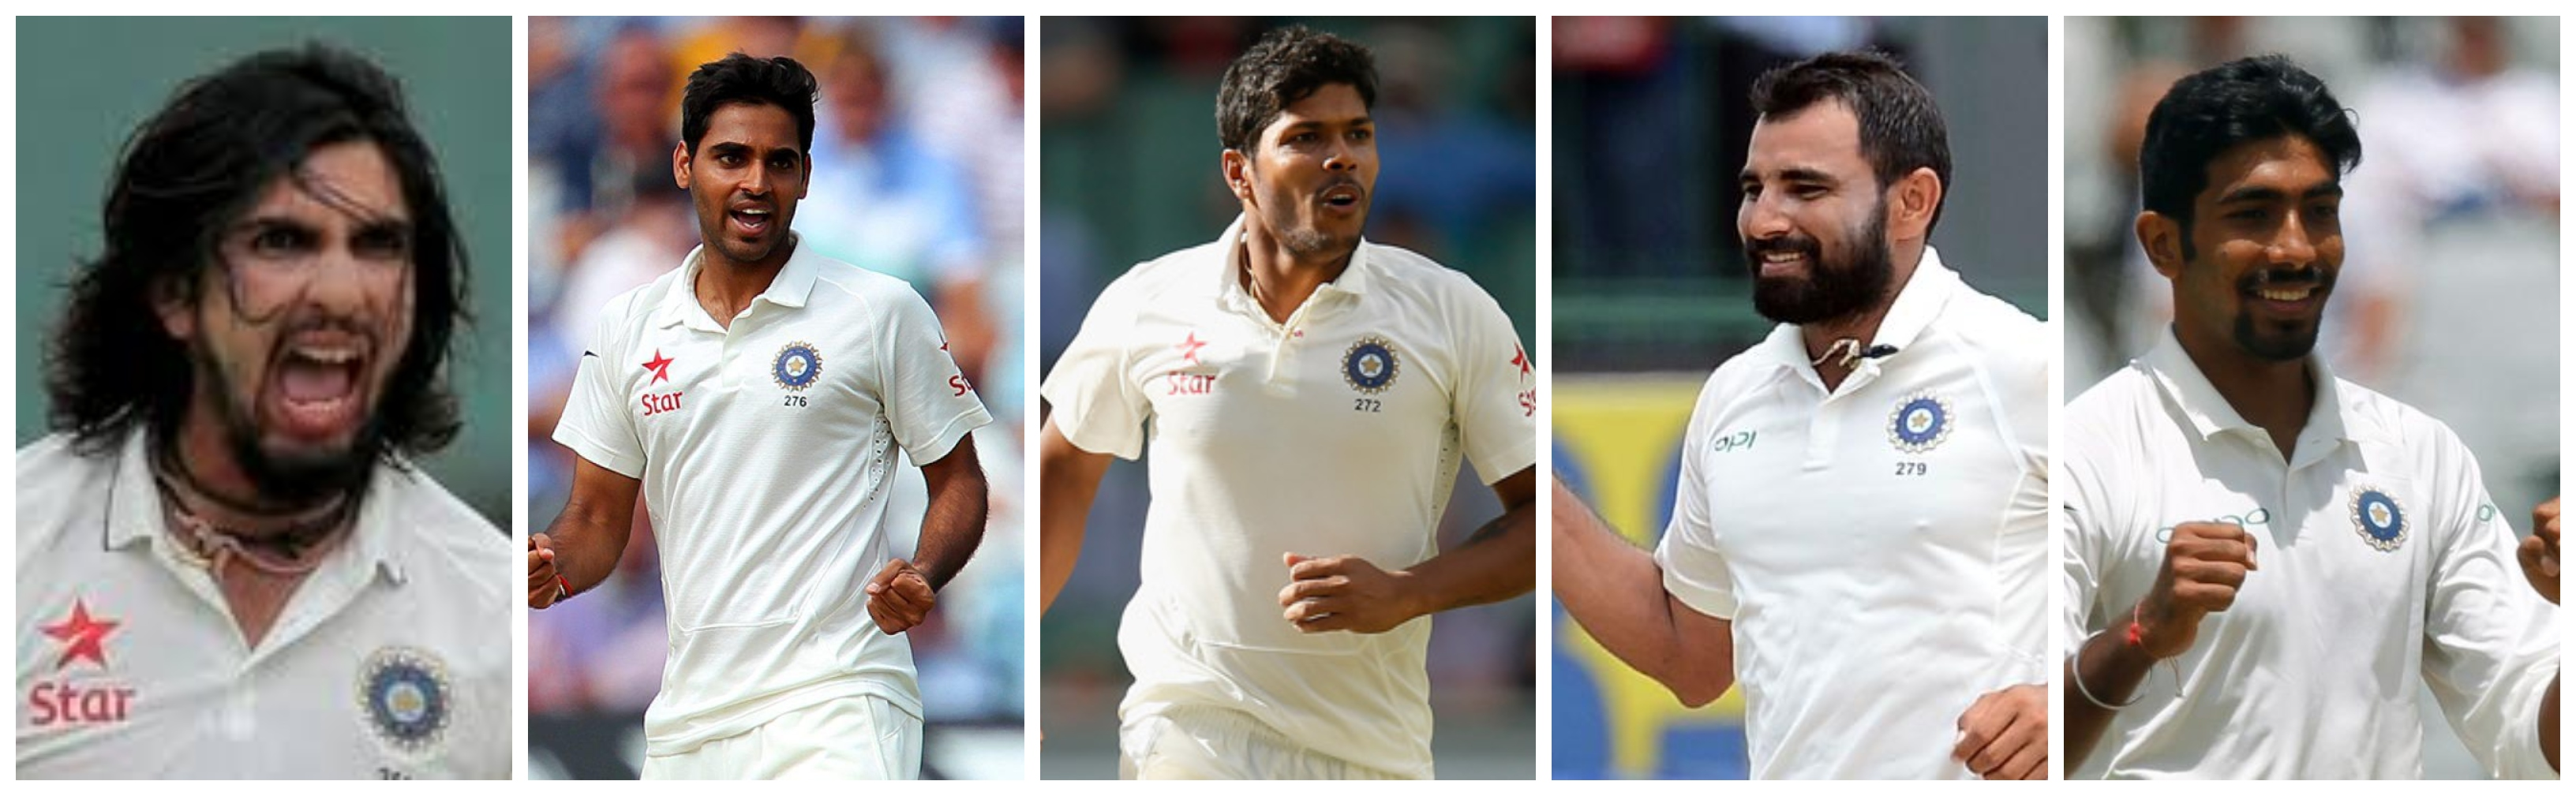 India's fast bowling will be it's strength in England.